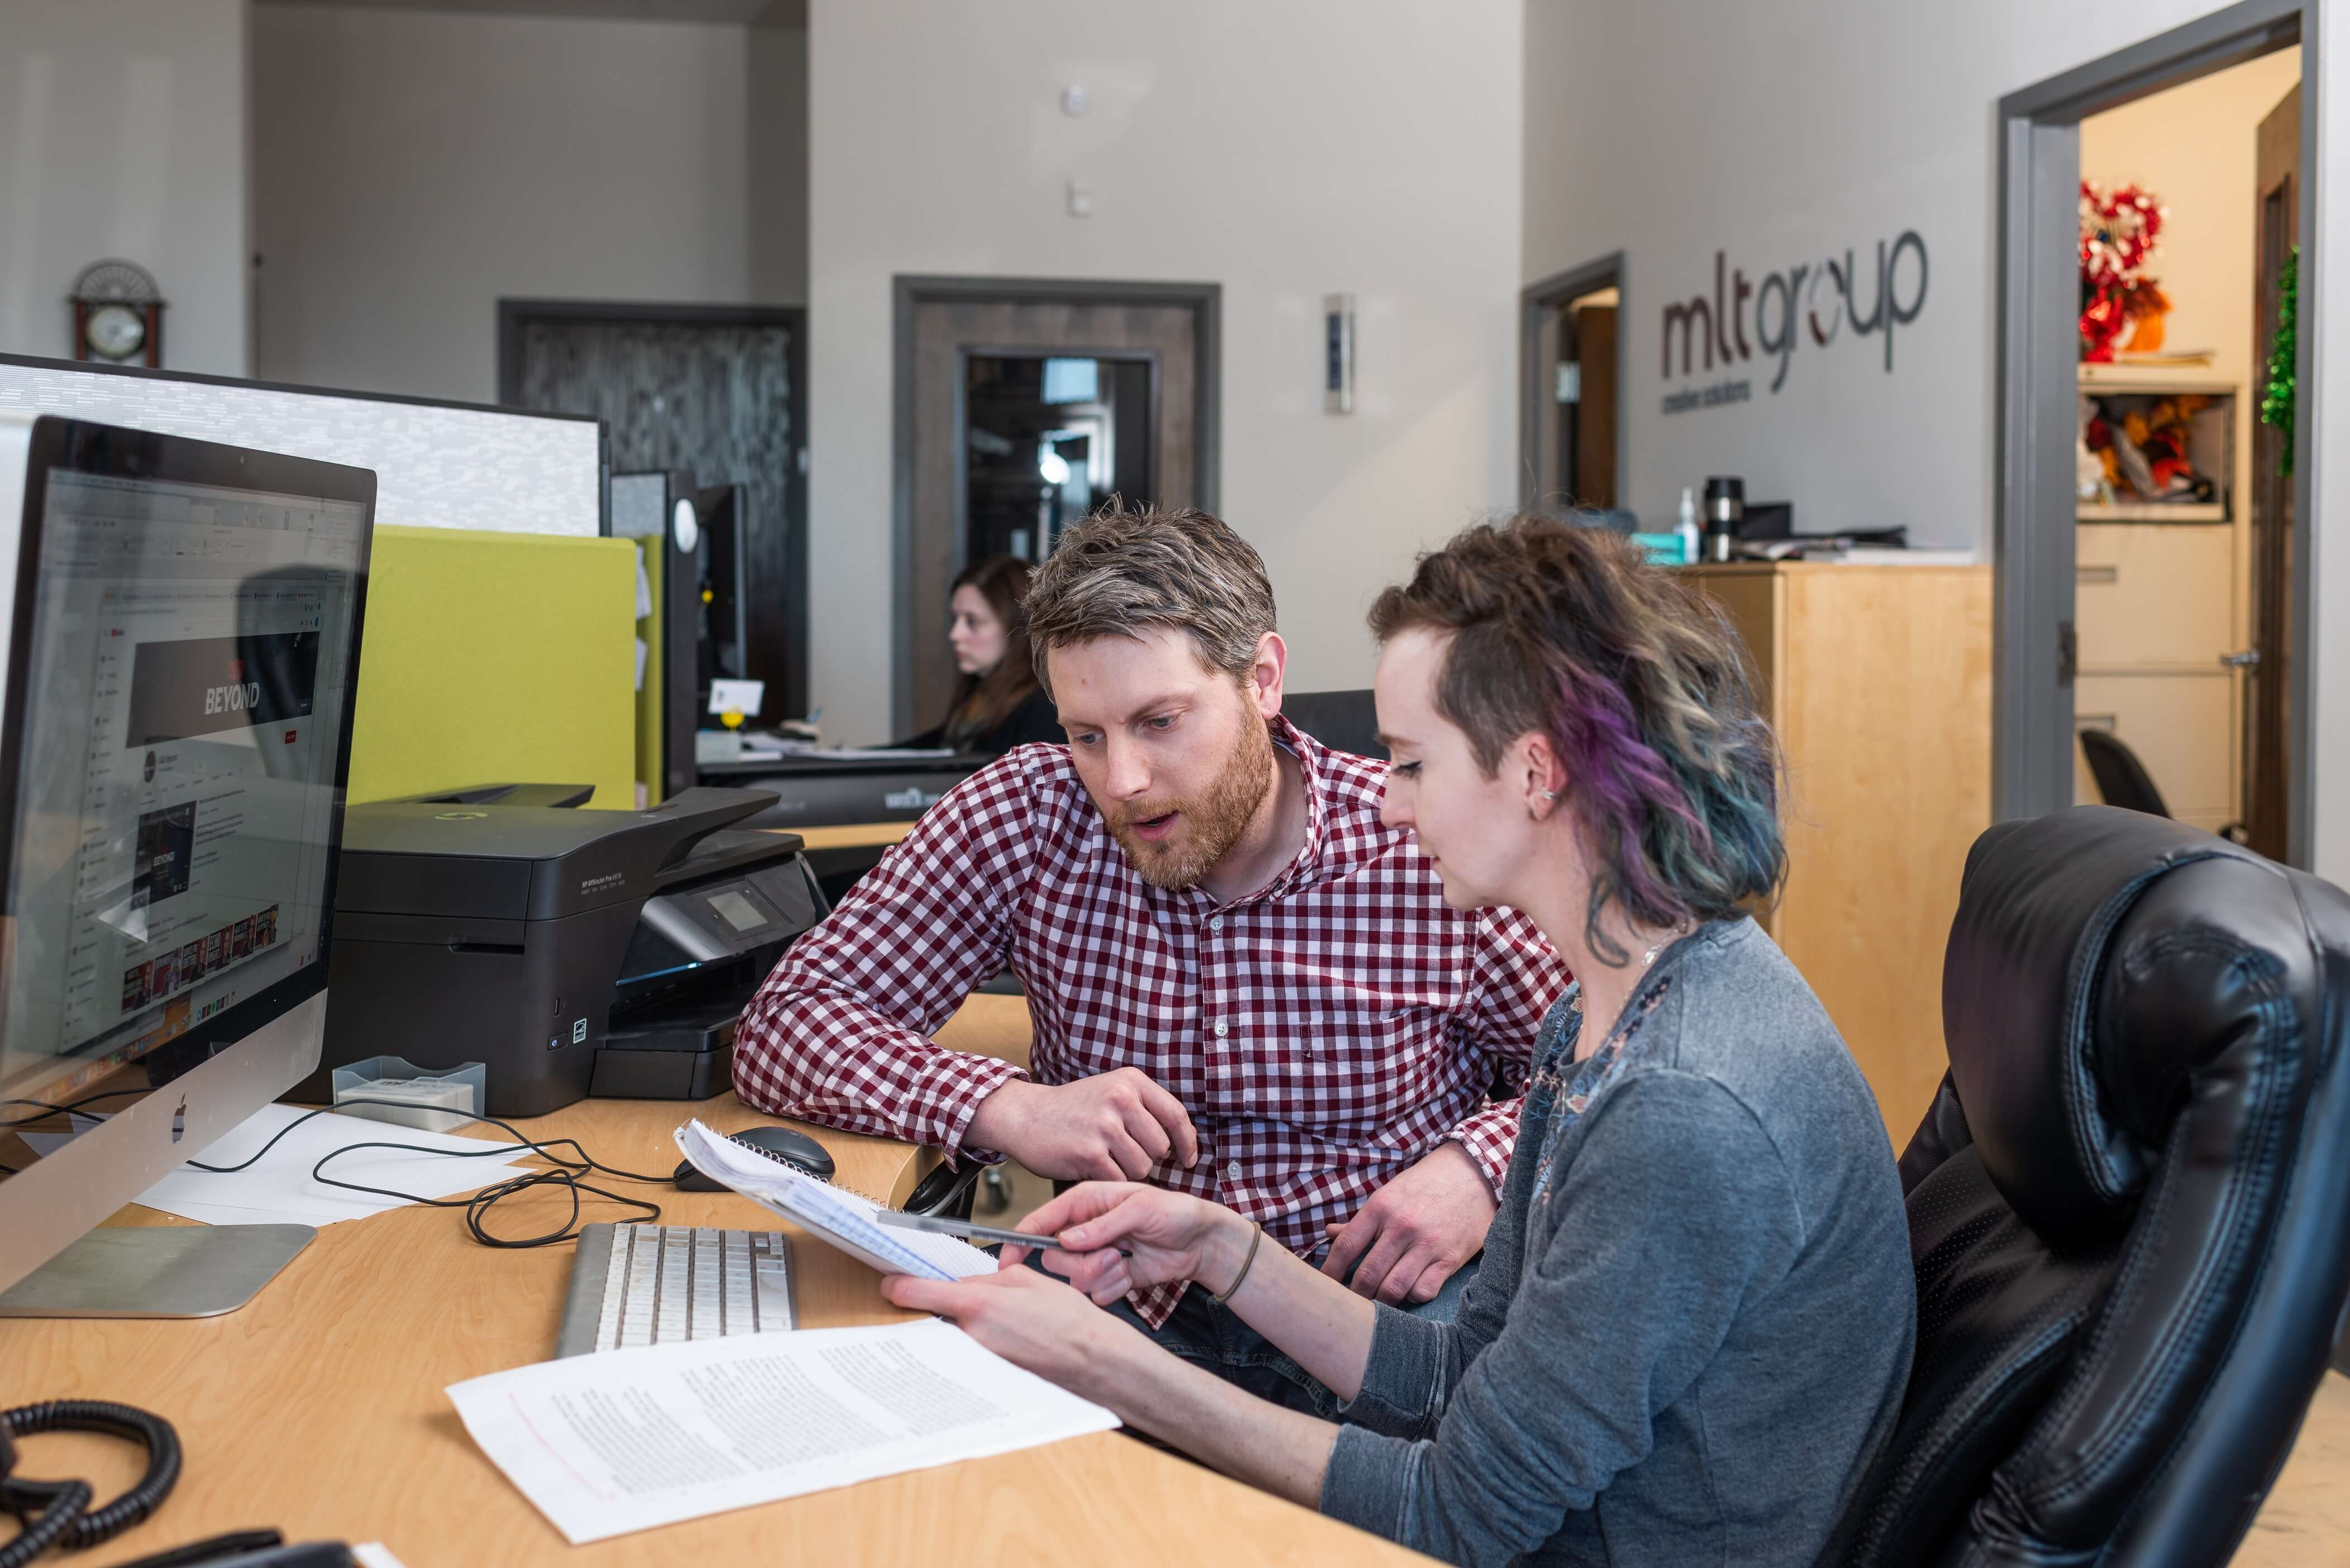 two people sitting at computer reviewing notes